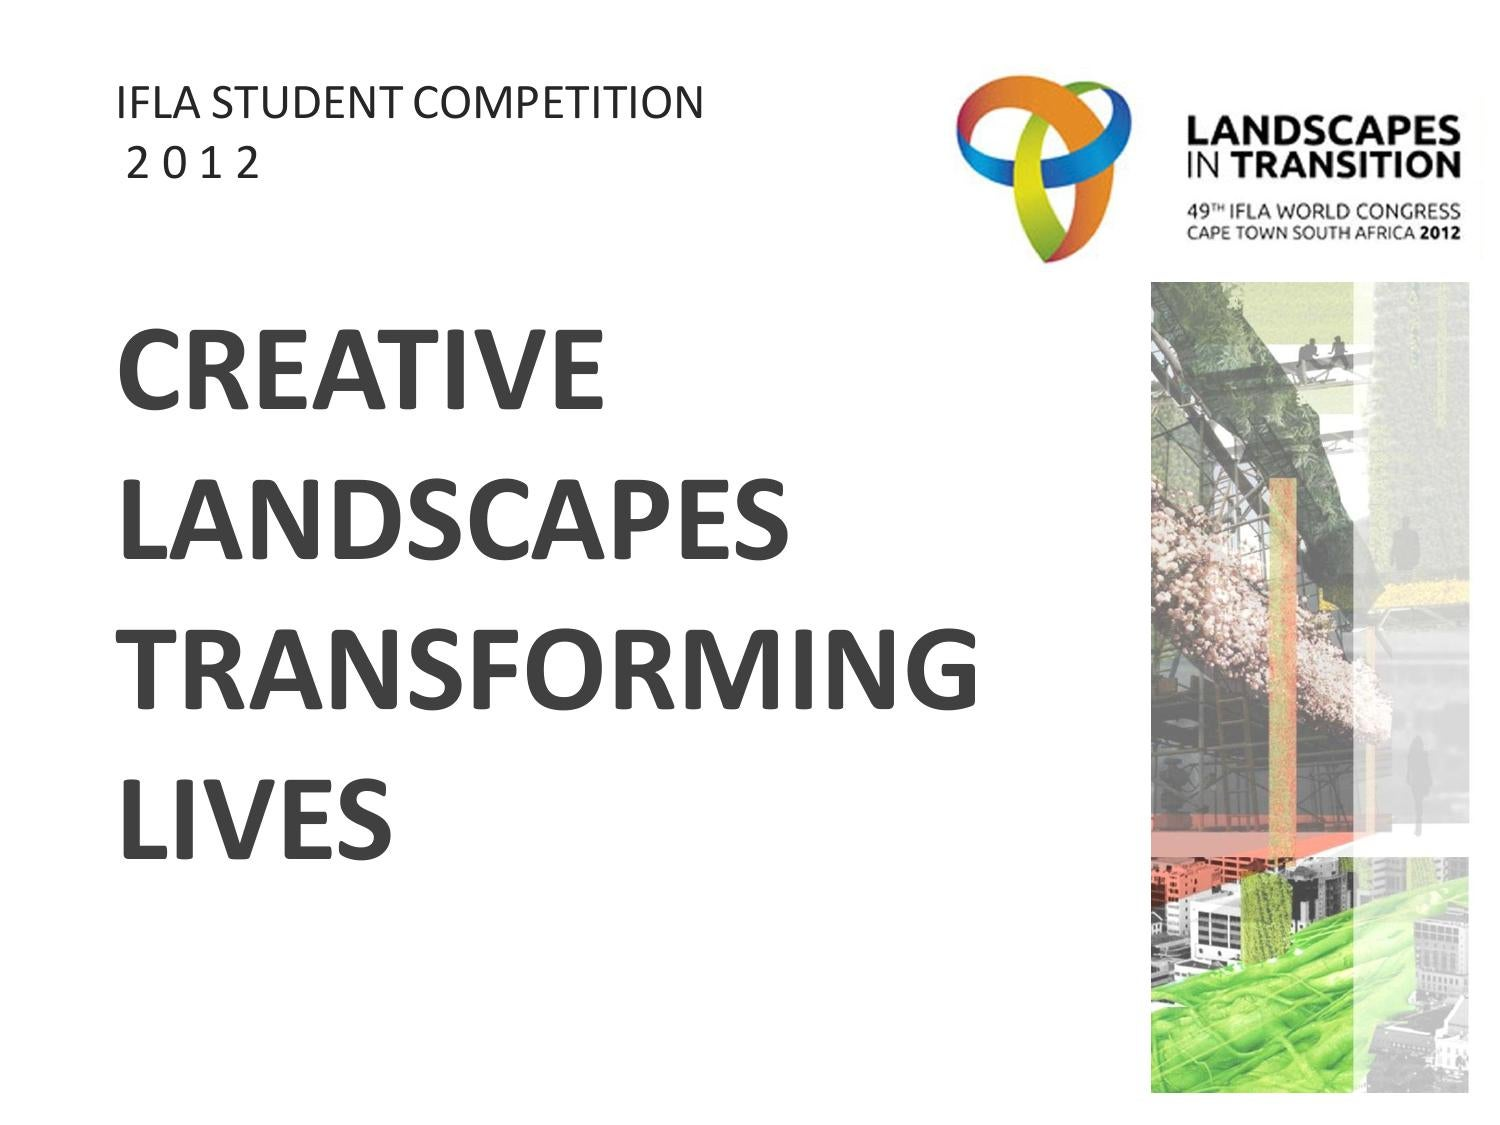 Ifla student design competition 2012 by international for International federation of landscape architects